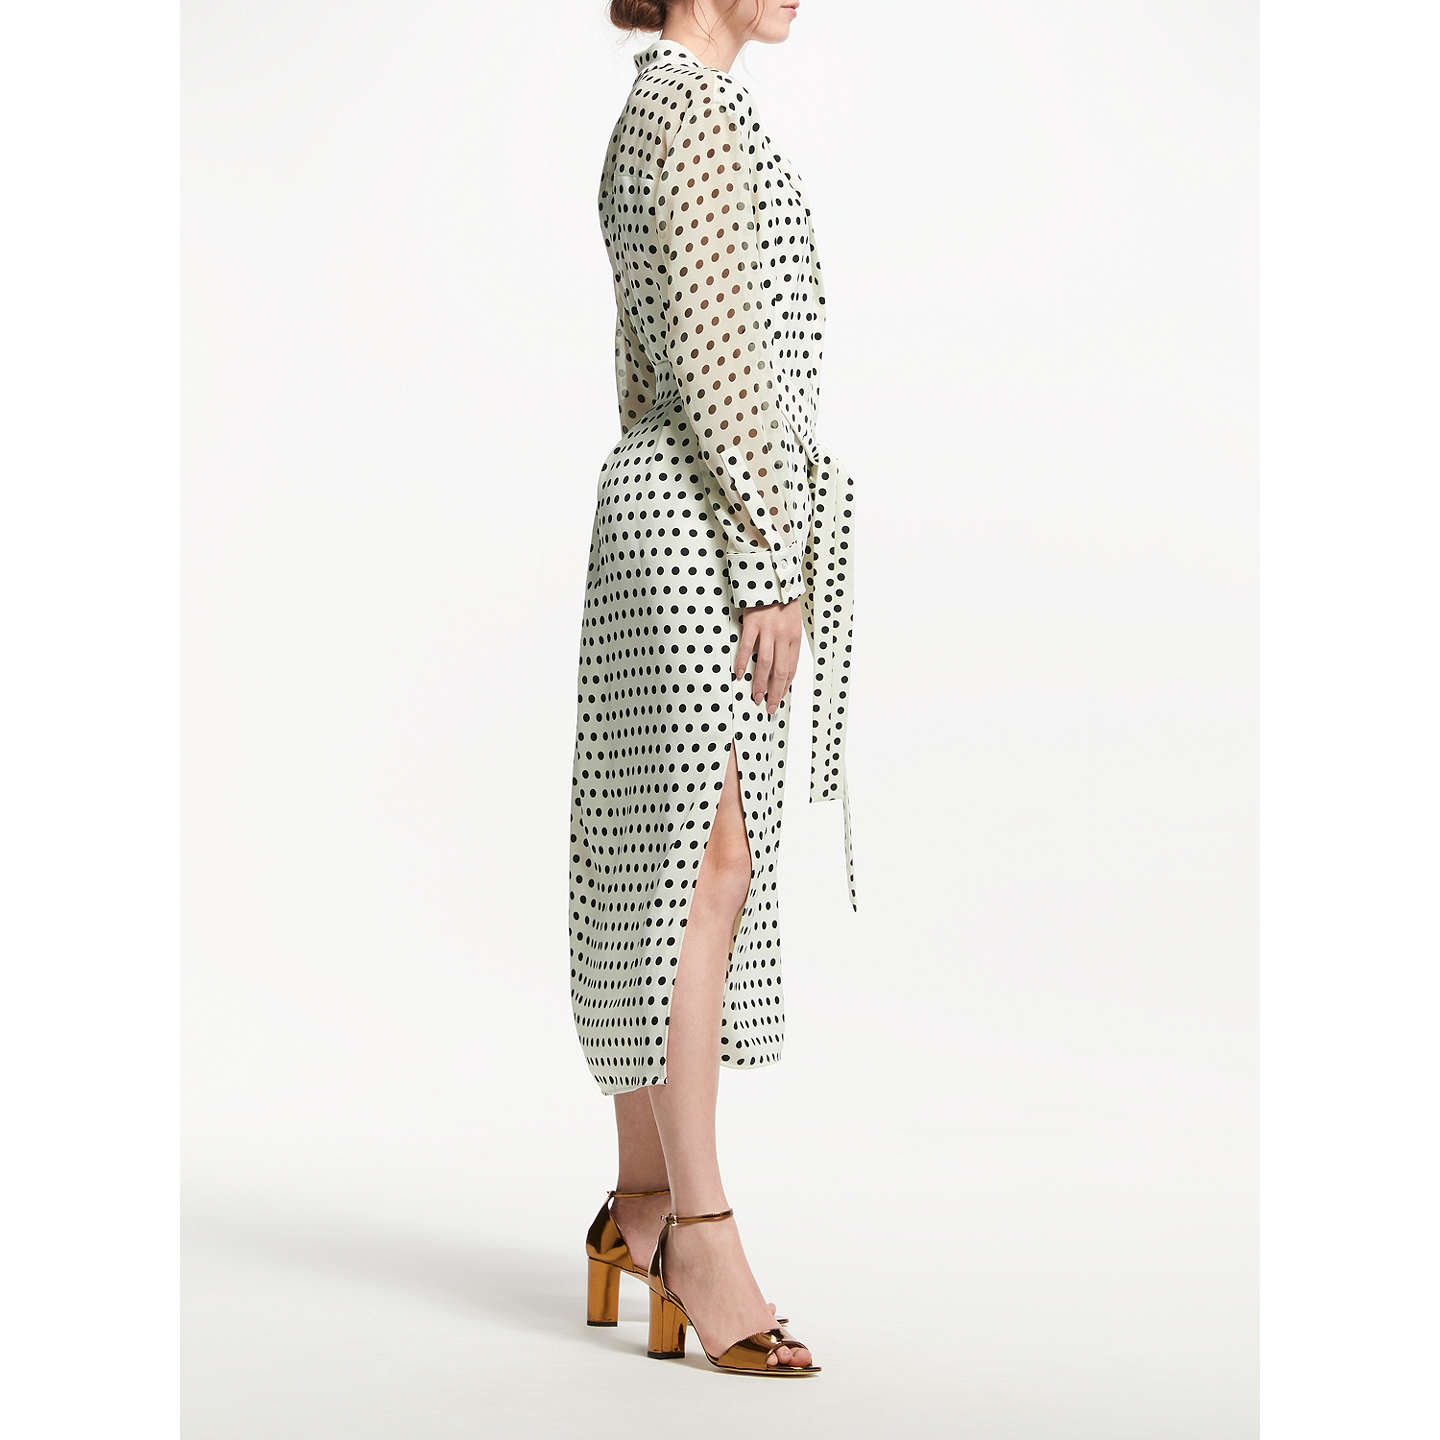 BuyMarella Nicolas Spot Print Shirt Dress, Wool White/Black, 12 Online at johnlewis.com